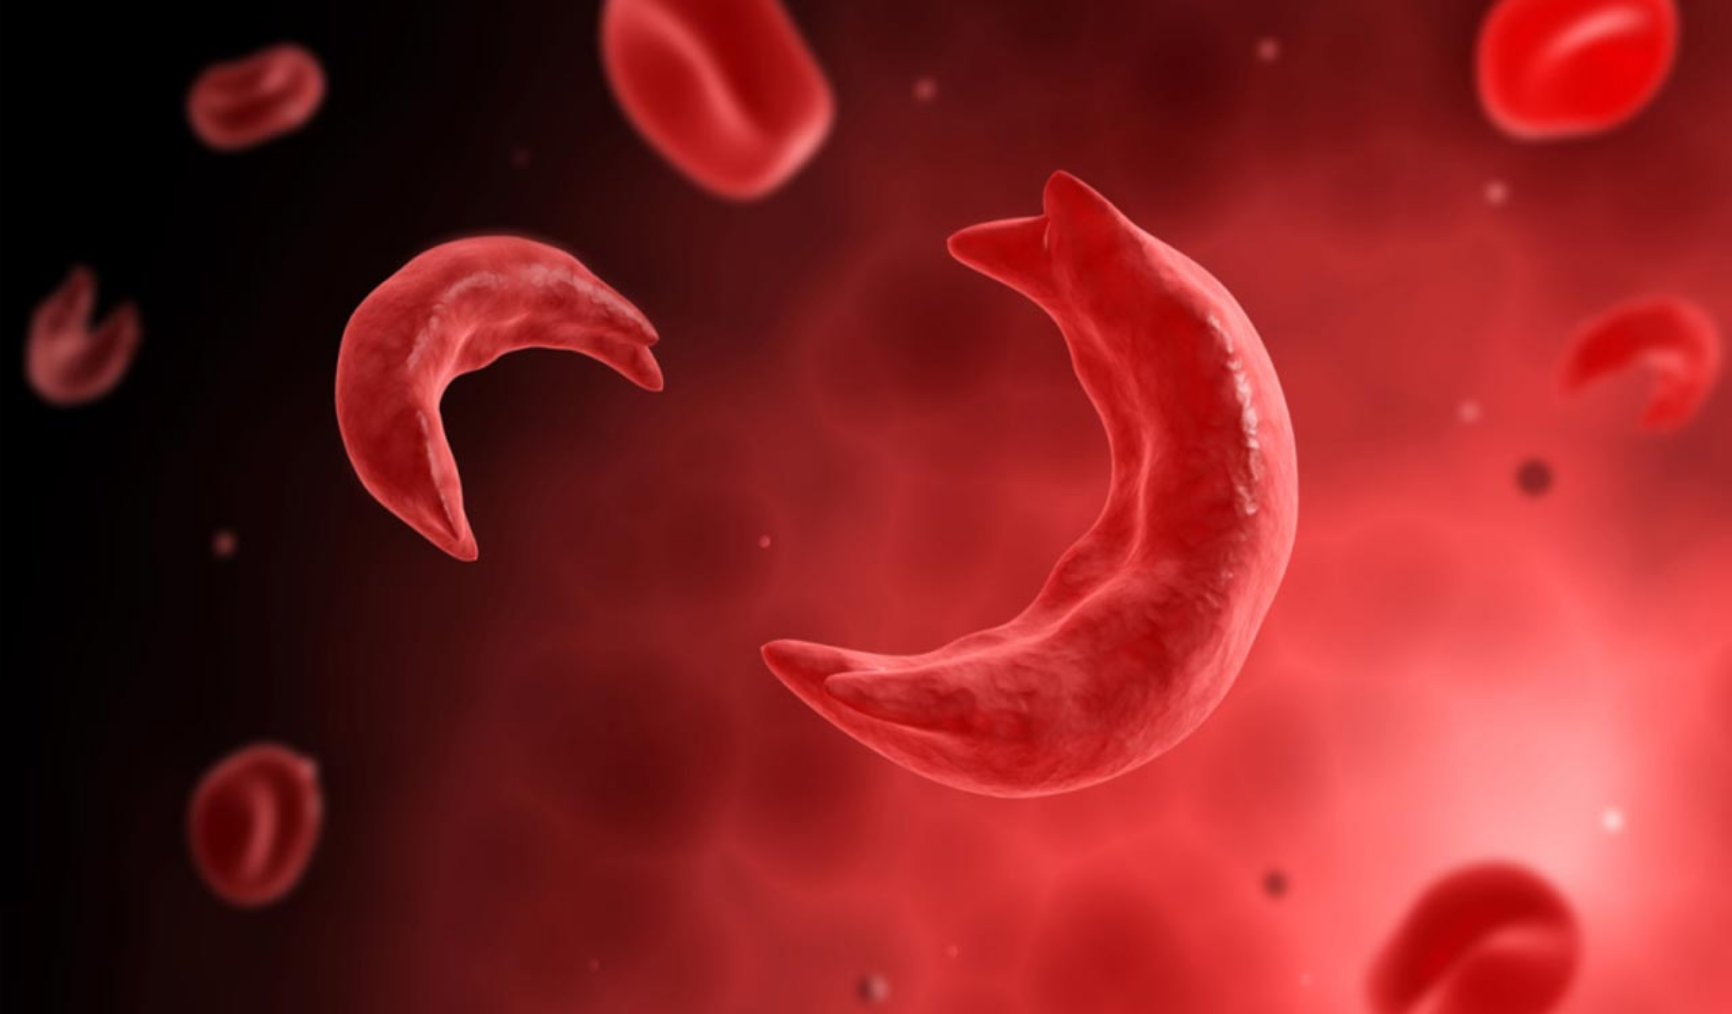 Nigeria has the highest rate of sickle cell disease in the world